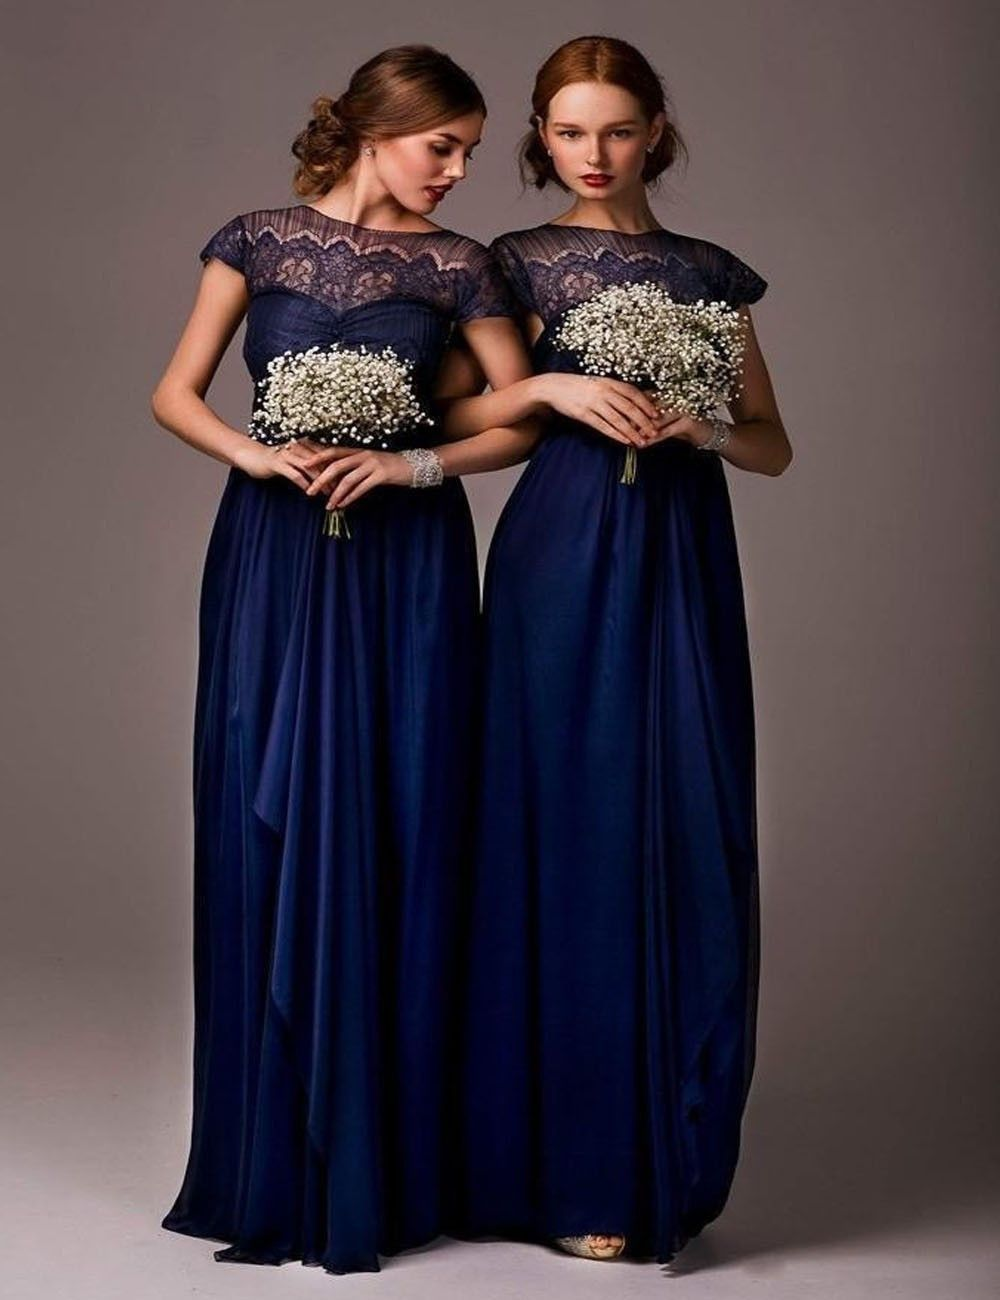 Hot sale 2017 a line high collar cap sleeves navy blue chiffon hot sale 2017 a line high collar cap sleeves navy blue chiffon long bridesmaid dresses ombrellifo Image collections